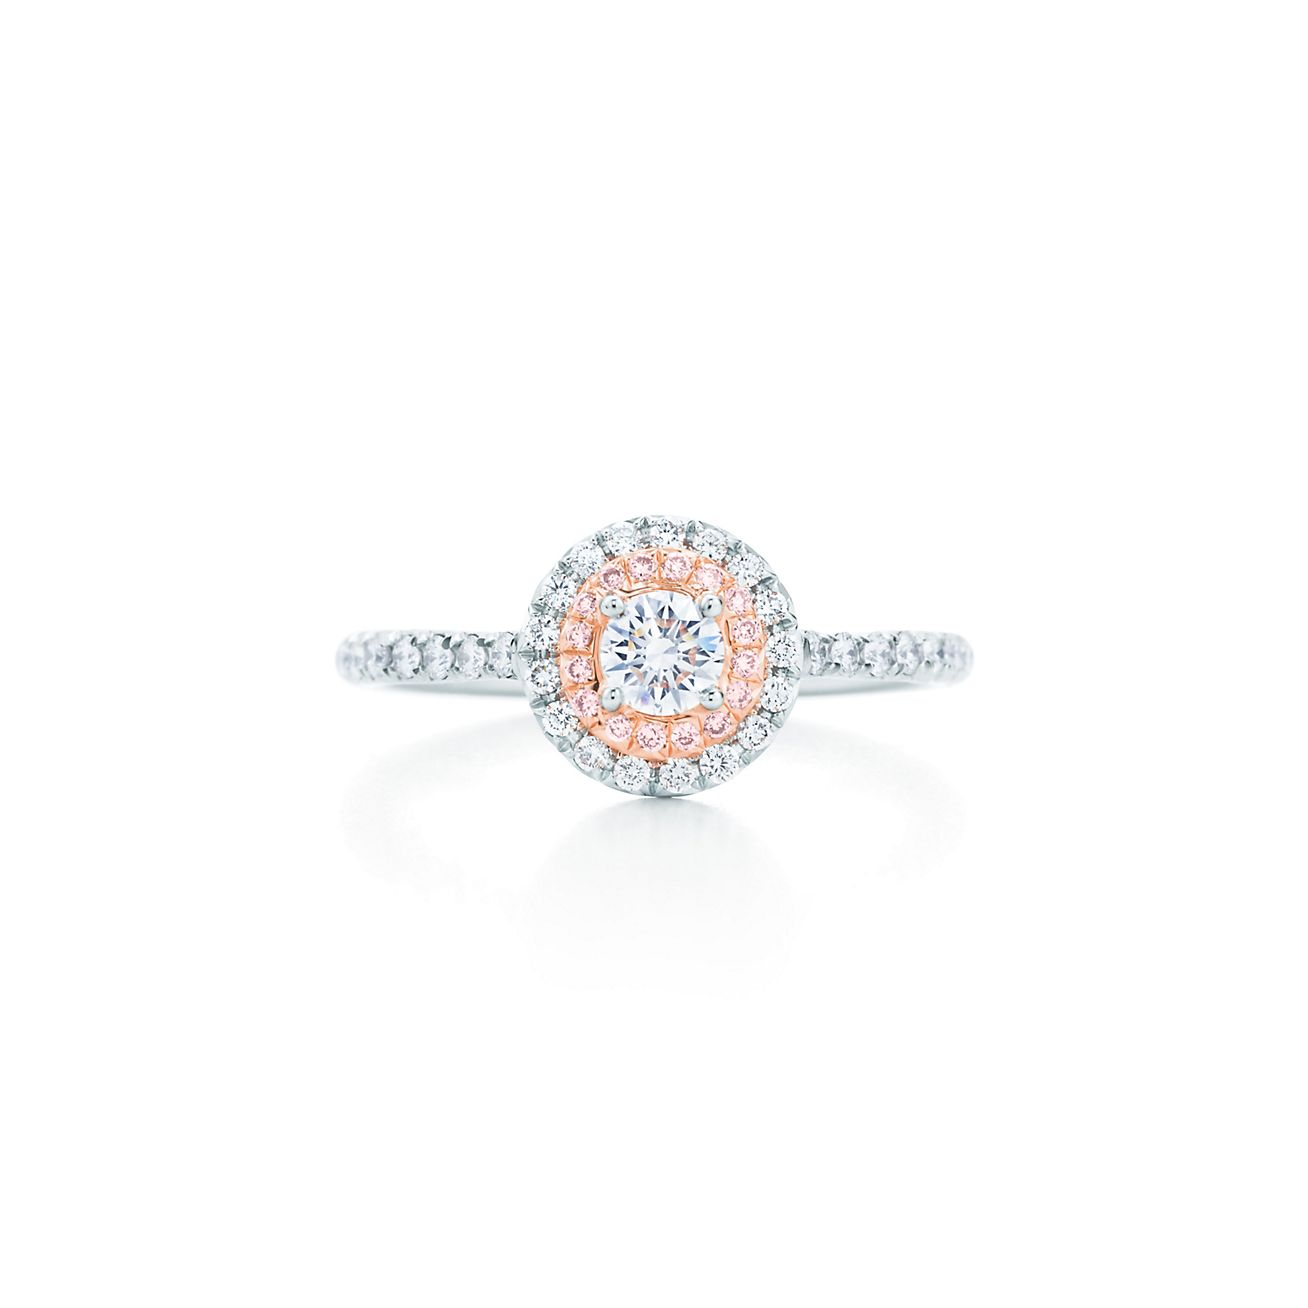 Tiffany Soleste® Ring In Platinum And 18k Rose Gold With